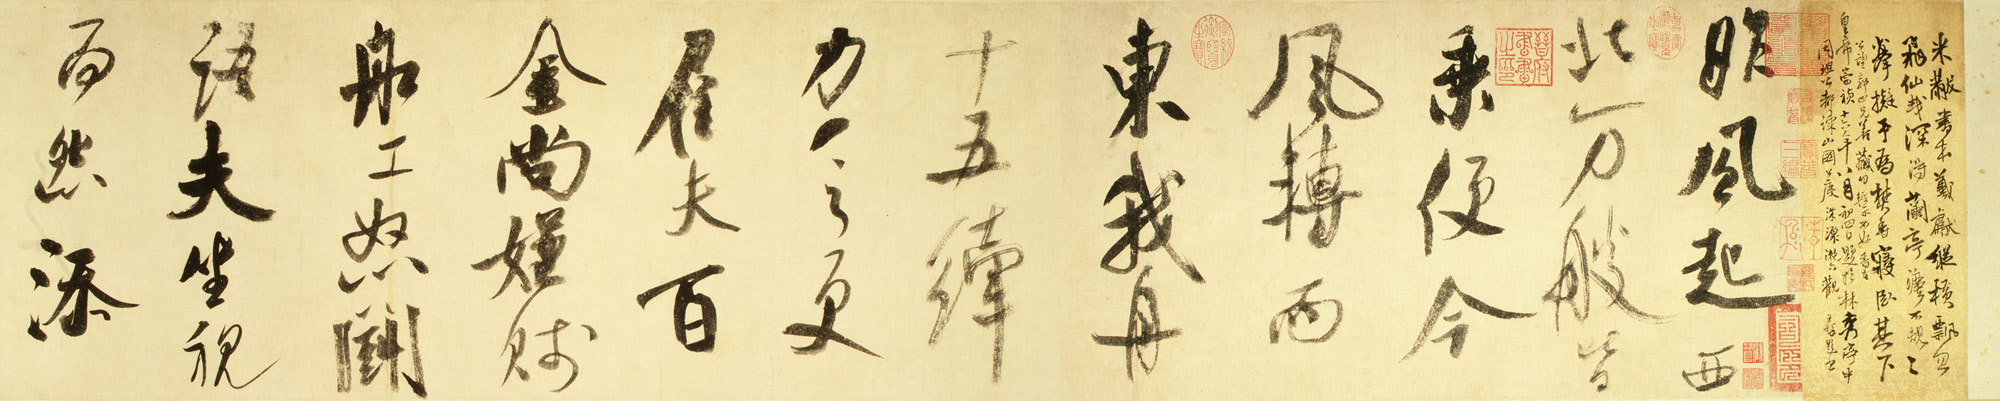 Ancient chinese symbols Calligraphy ancient china